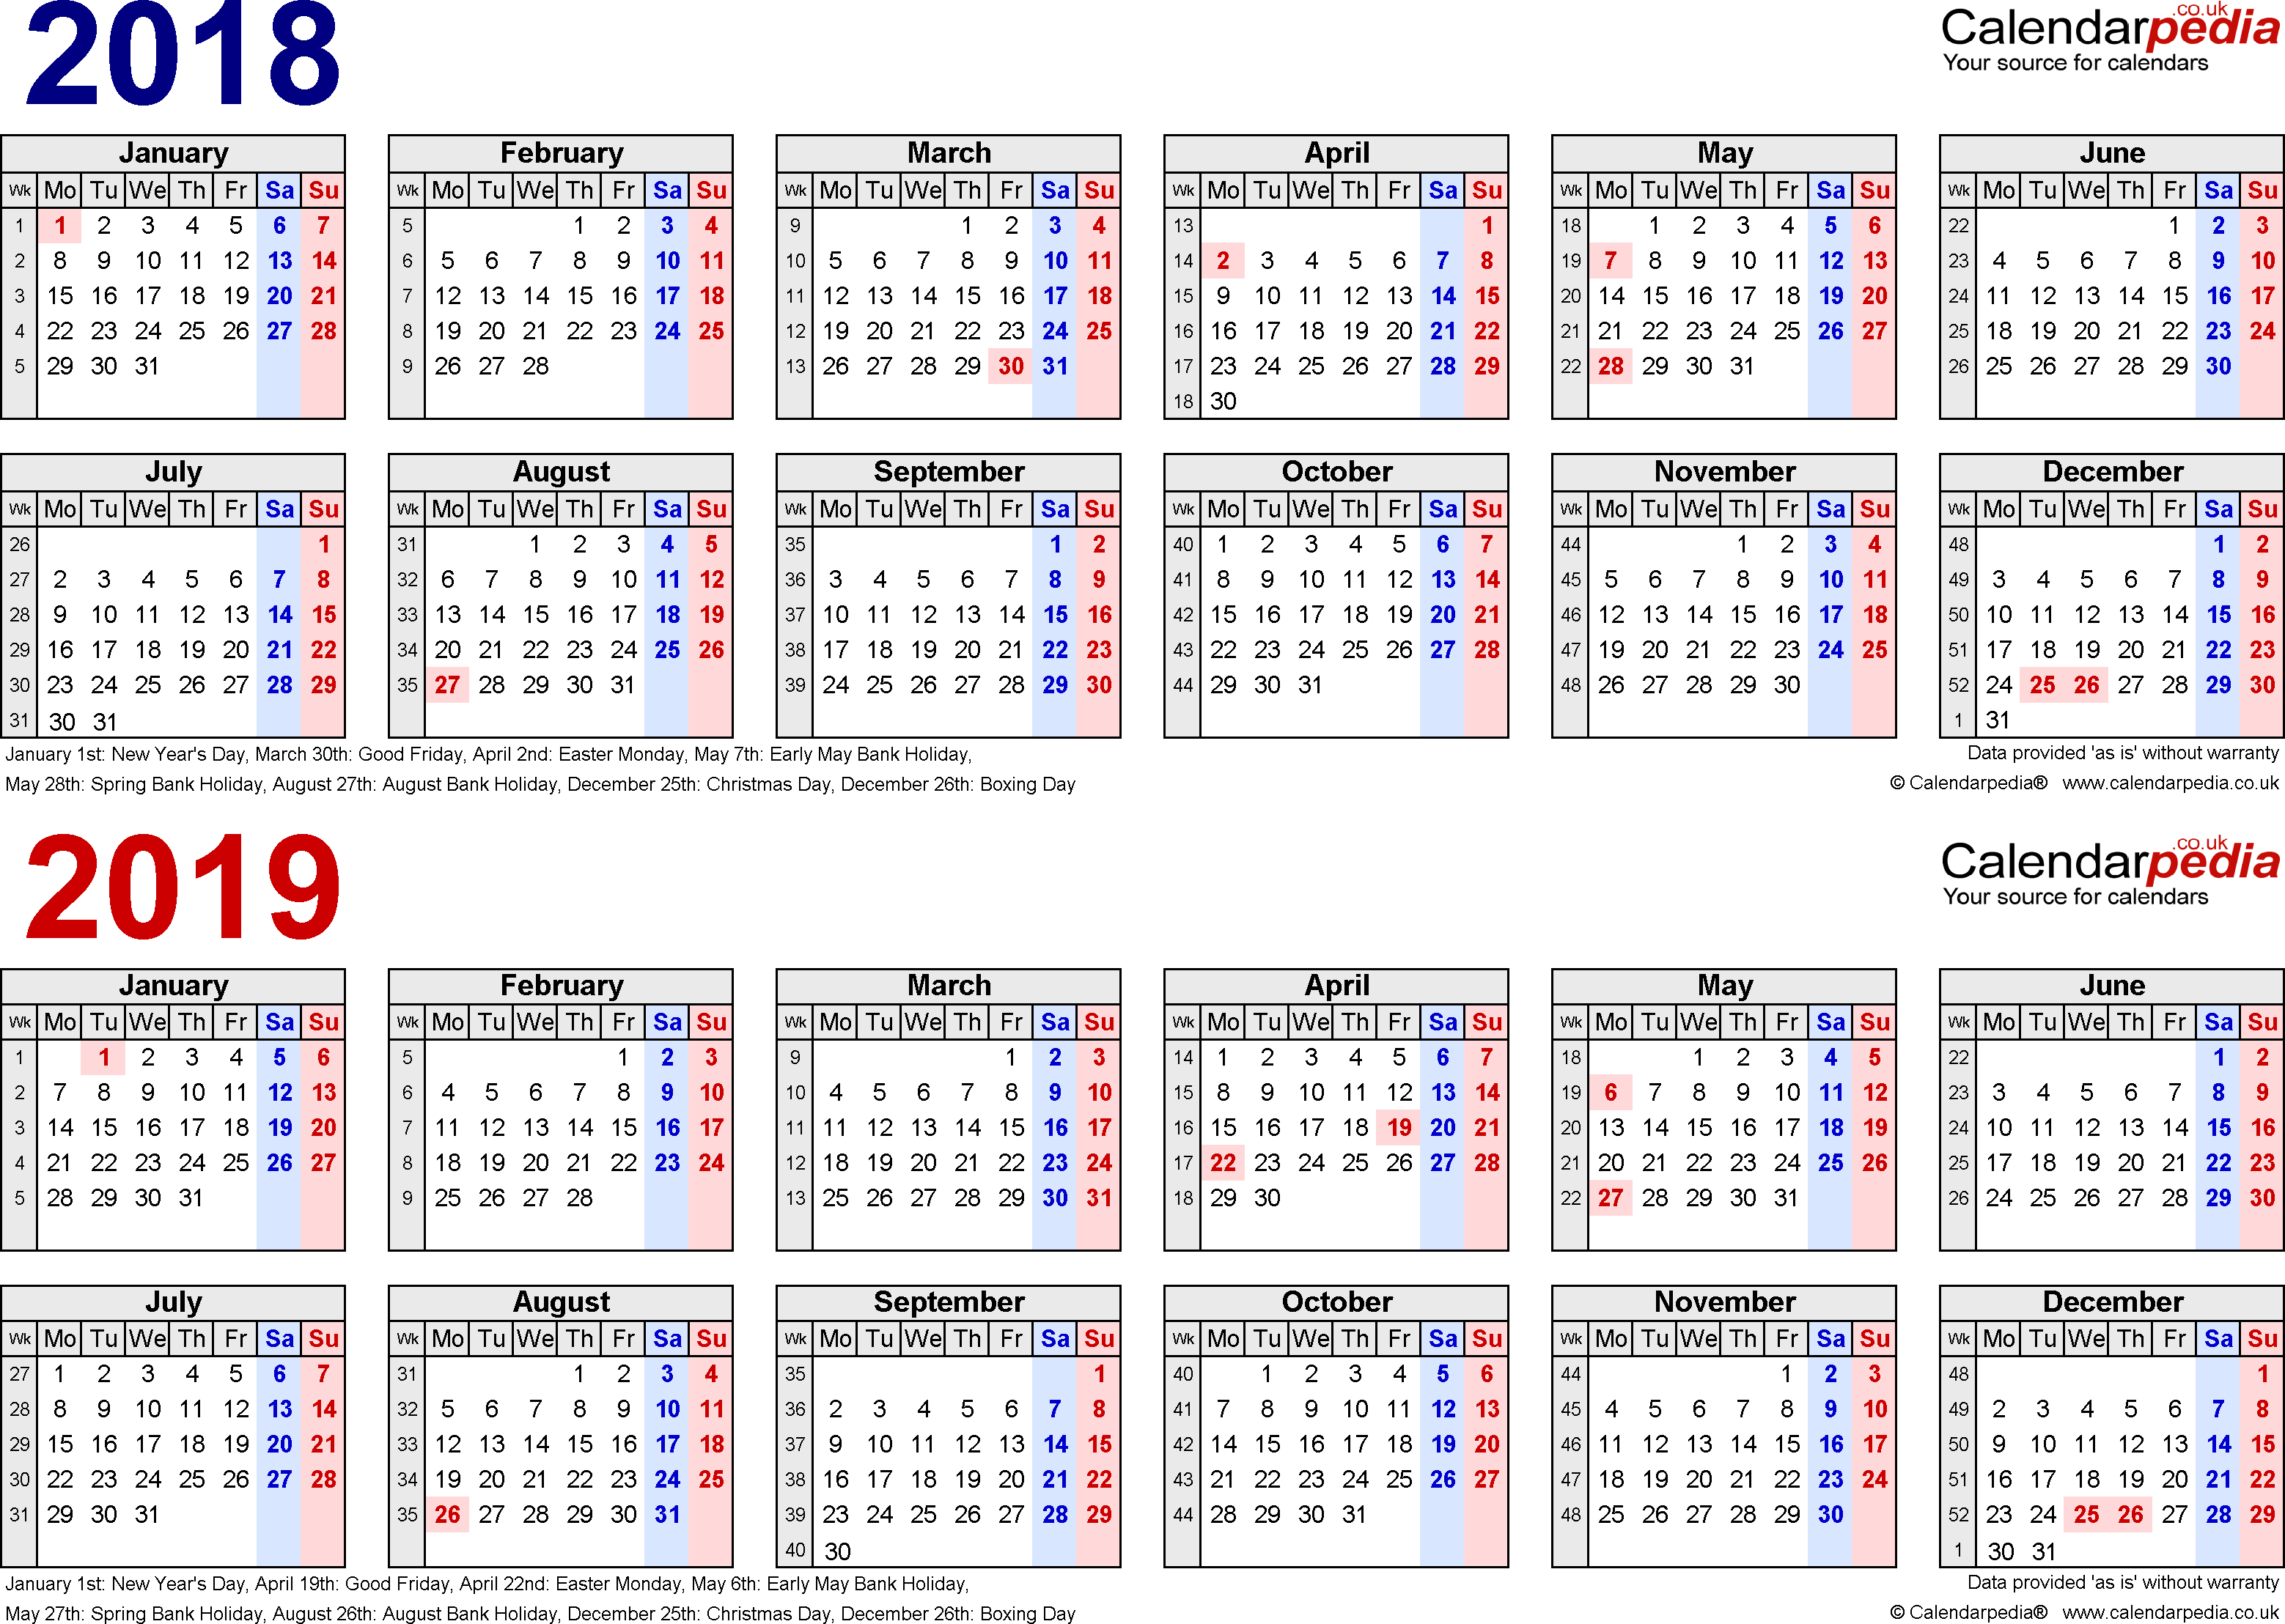 Download Template 1: PDF template for two year calendar 2018/2019 in blue/red (landscape orientation, 1 page, A4)